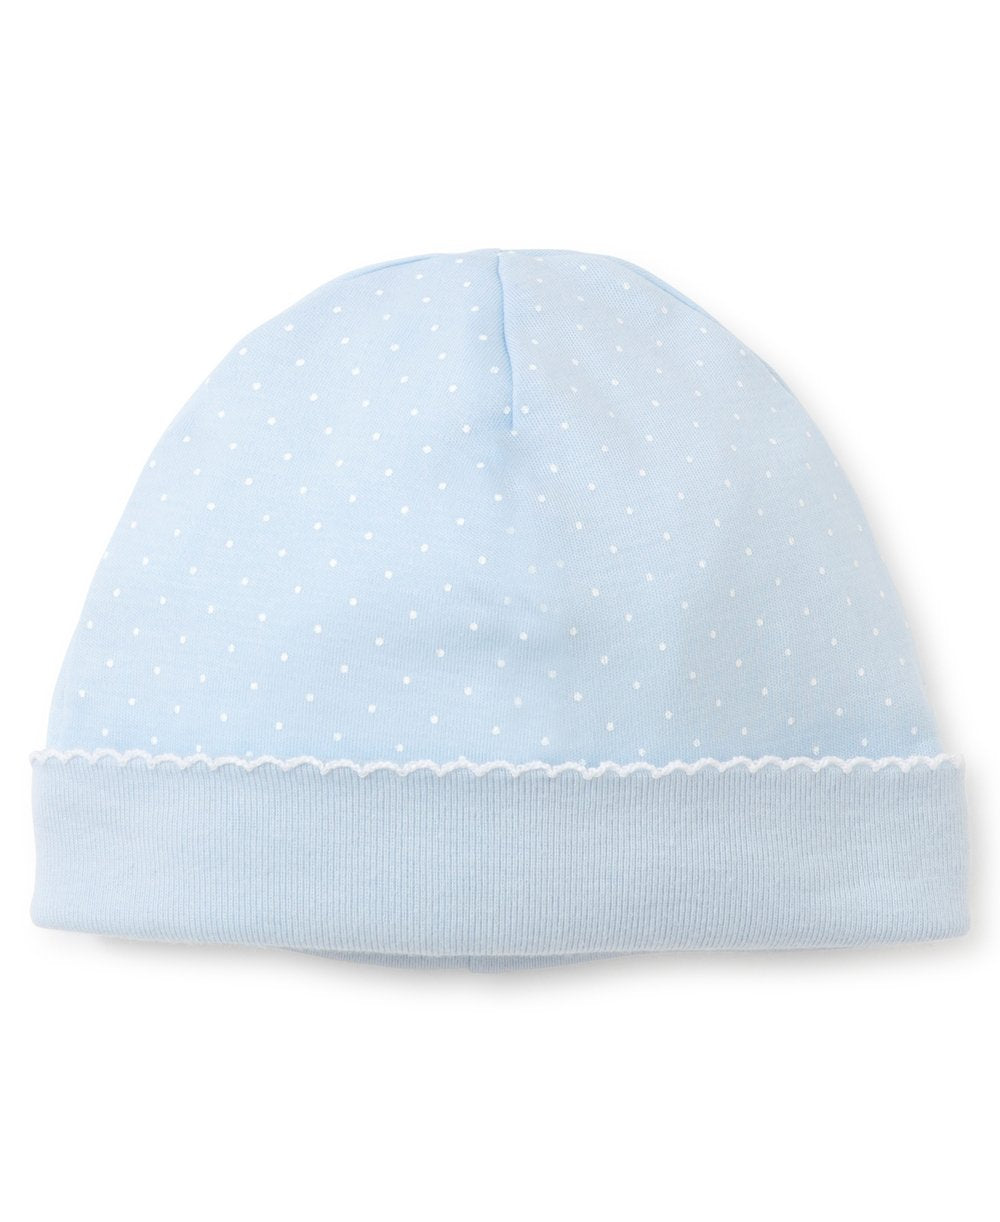 Blue/White Dots Print Hat - Posh Tots Children's Boutique